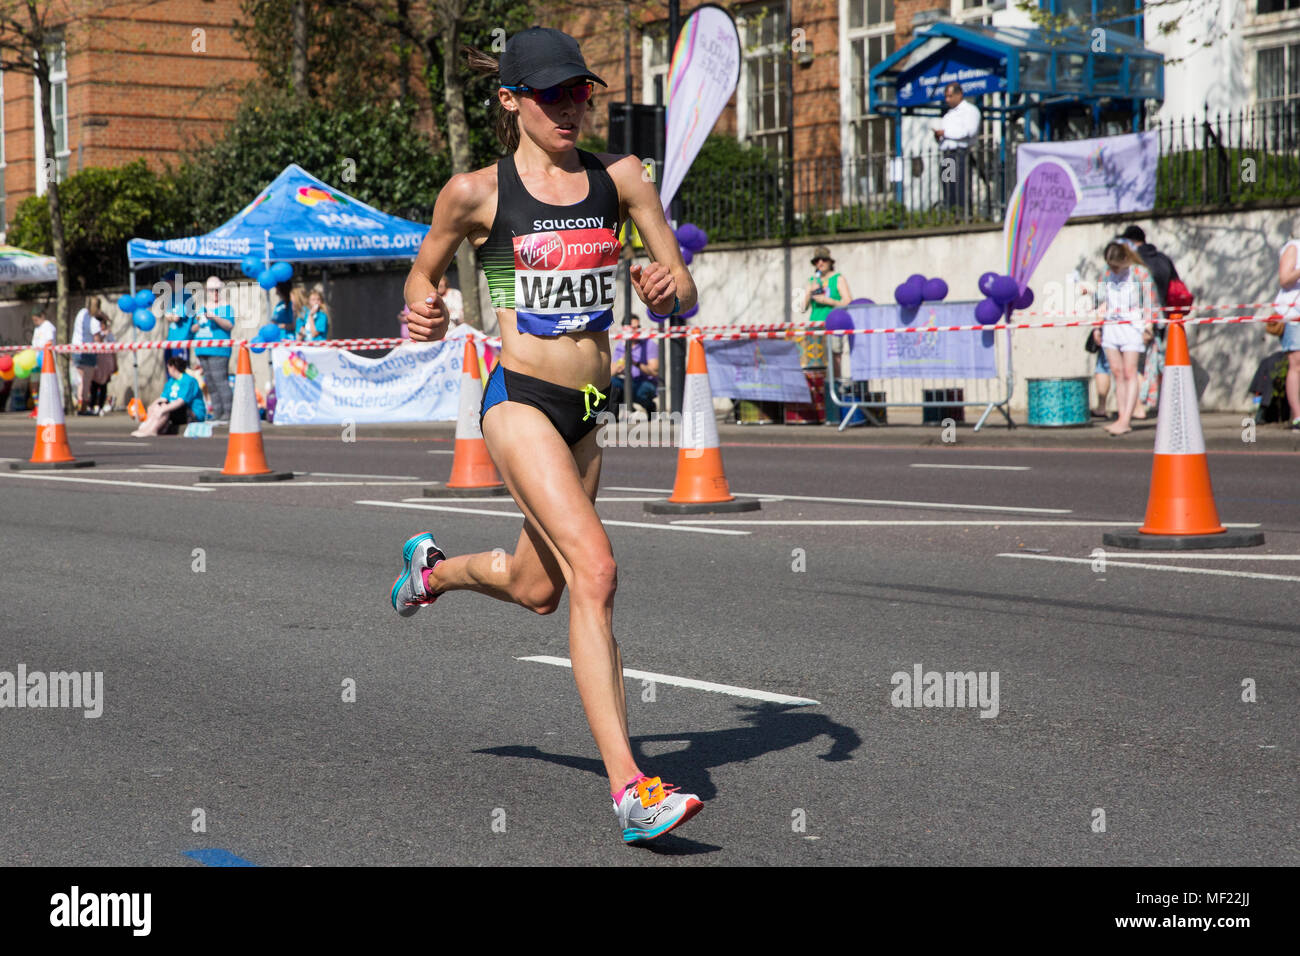 London, UK. 22nd April, 2018. Rebecca Wade of the United States competes in the Elite Women's event at the 2018 Virgin Money London Marathon. The 38th edition of the race was the hottest on record with a temperature of 24.1C recorded in St James's Park. - Stock Image